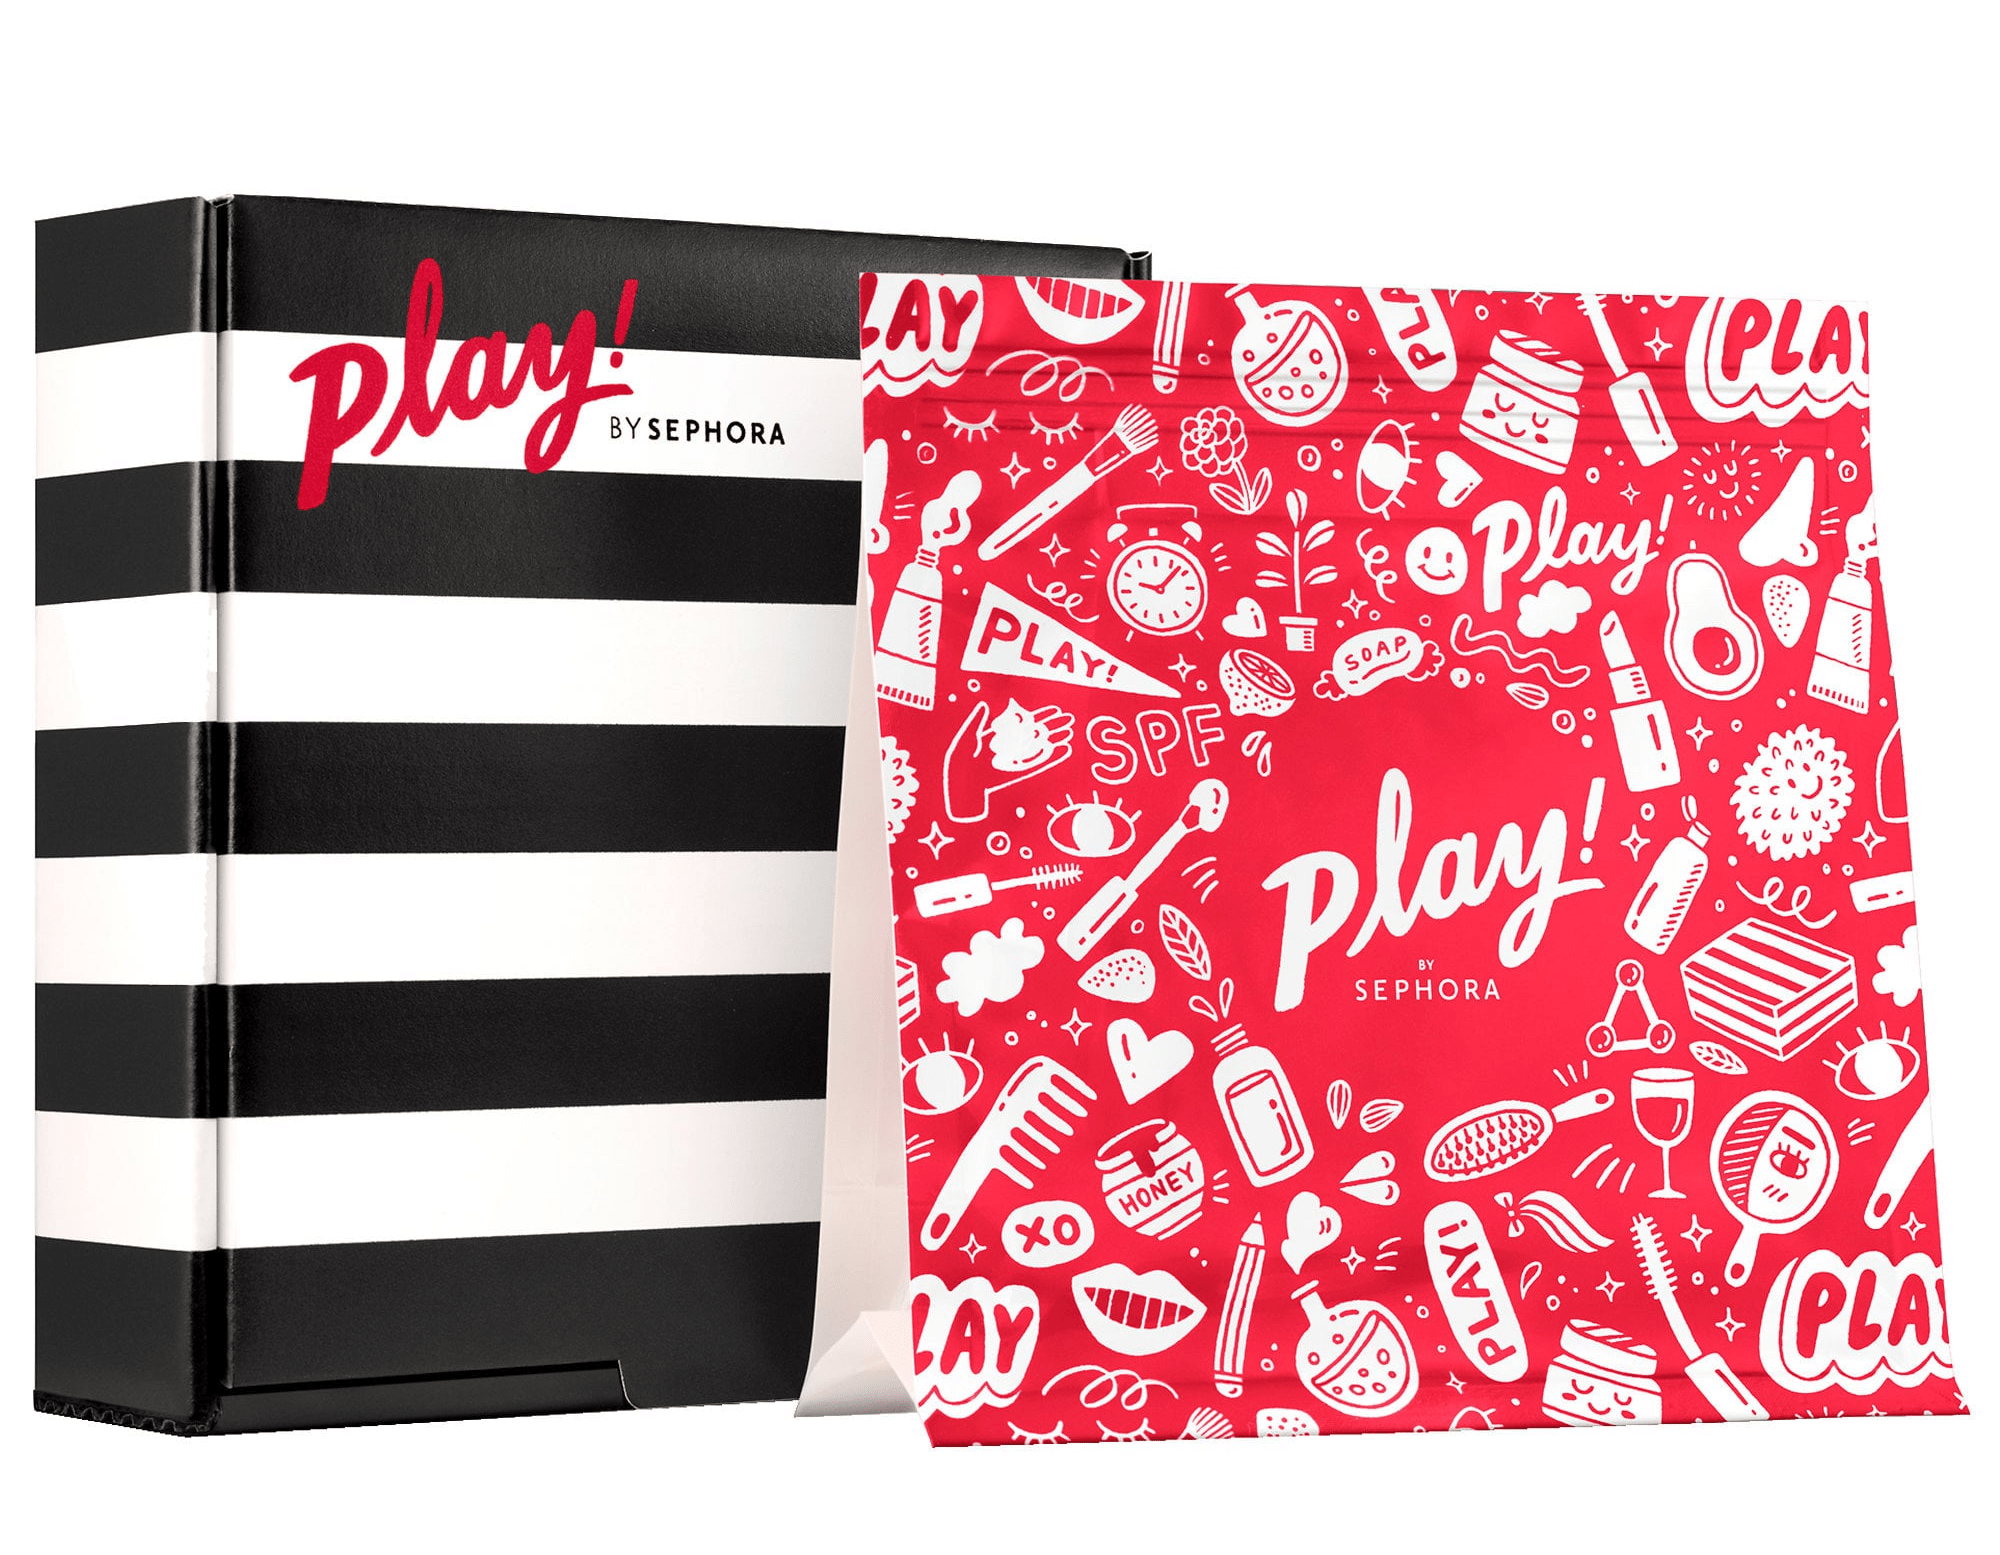 Play! by Sephora September 2019 Spoilers Round 2!